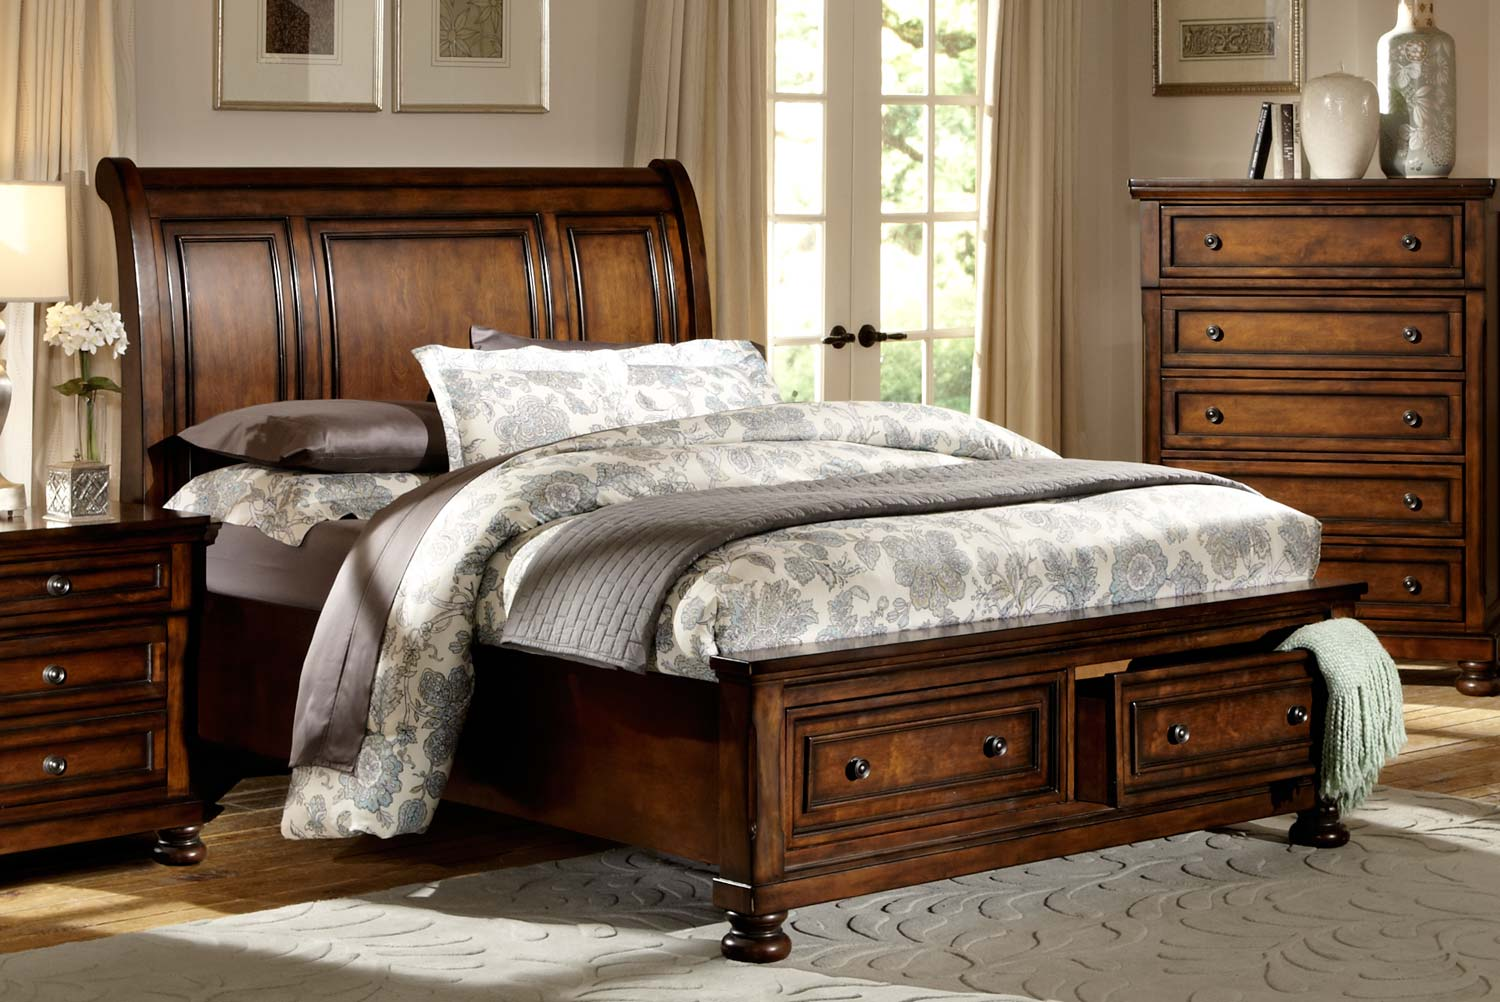 Homelegance Cumberland Platform Bed   Brown Cherry. Homelegance Cumberland Platform Bedroom Set   Brown Cherry B2159